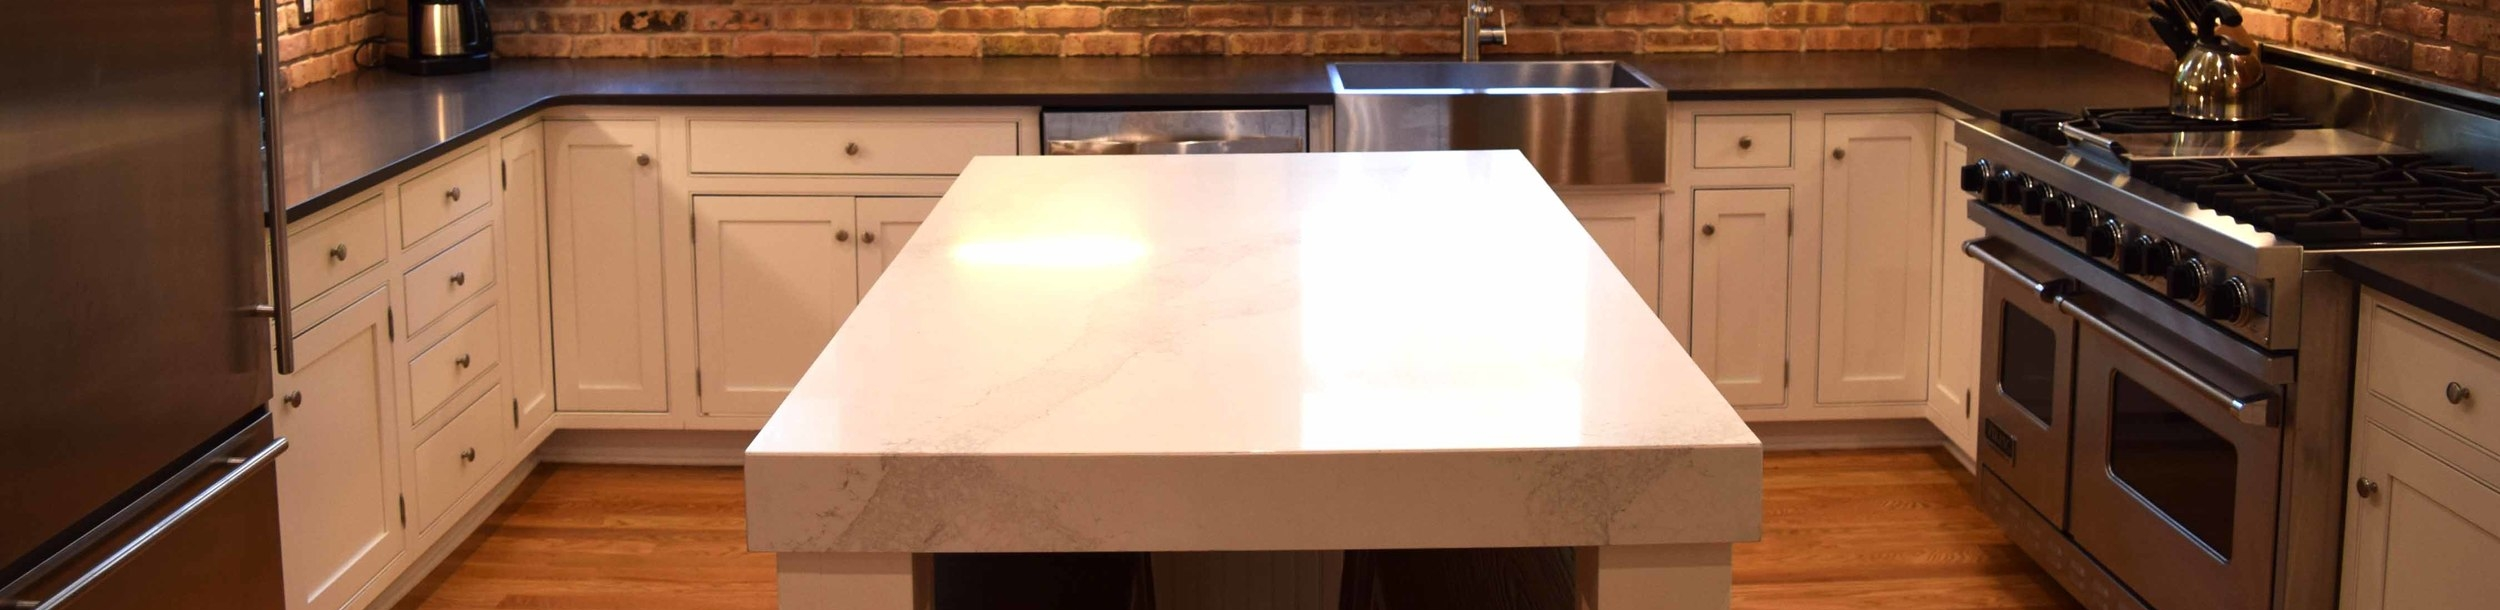 Engineered quartz countertops featured on the island above in a white marble pattern and on the surrounding countertops in black.